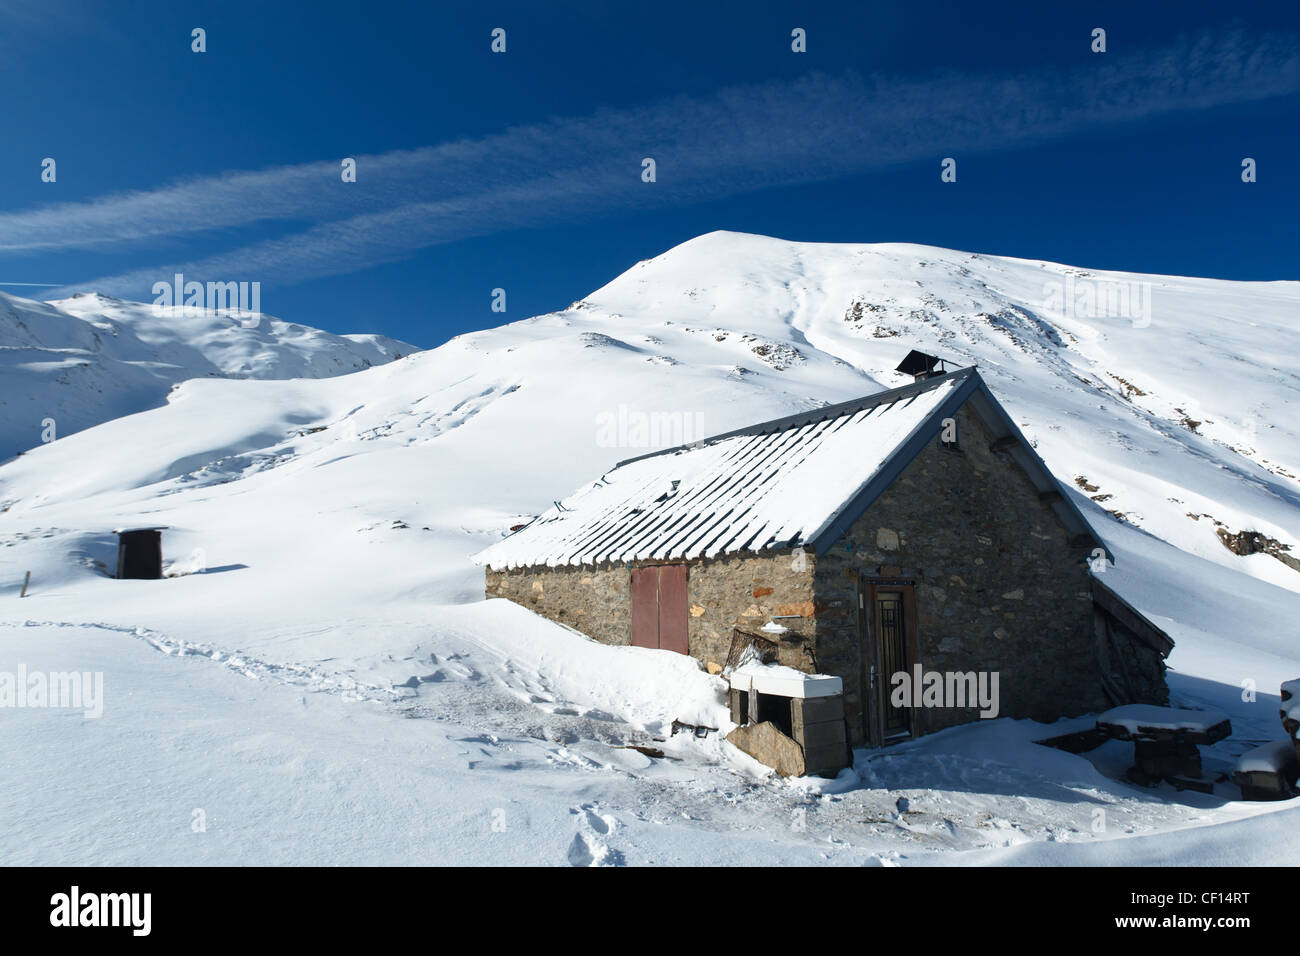 Mountain shelter in snowy mountain landscape near Col de Pause, Ariege, Pyrenees, France. - Stock Image